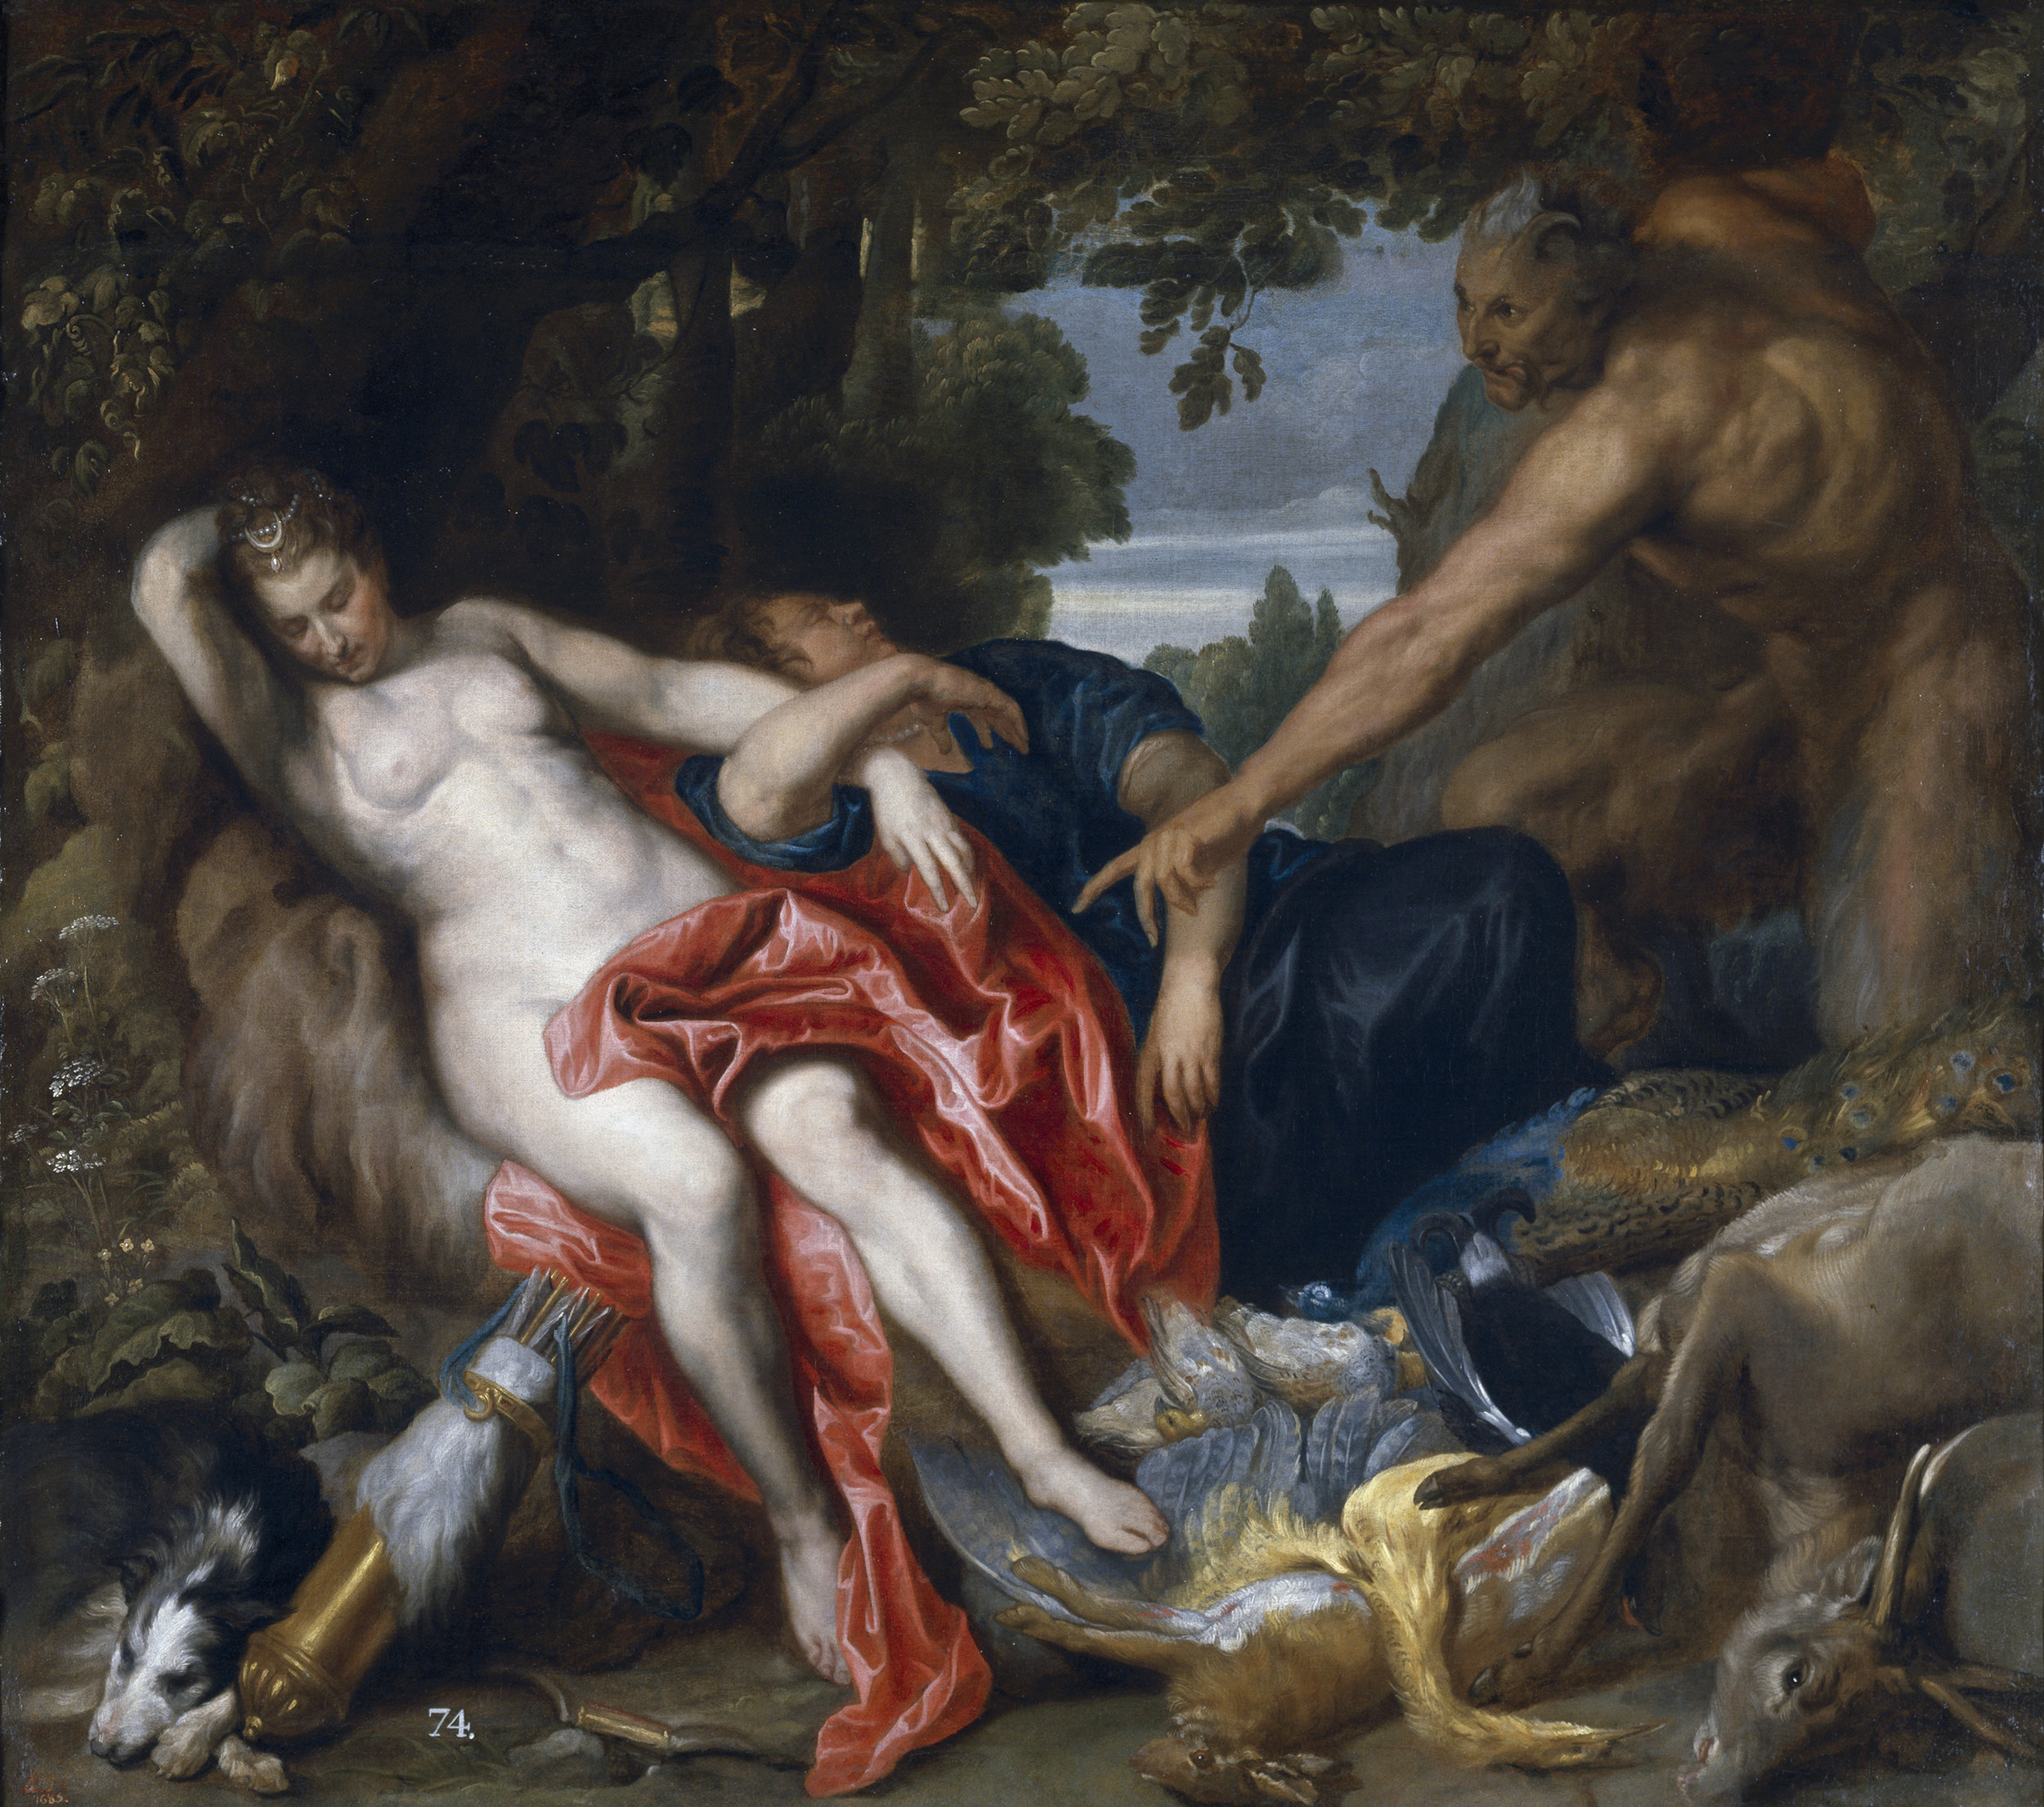 ANTHONY VAN DYCK<strong>Diana and a Nymph Discovered by a Satyr</strong>